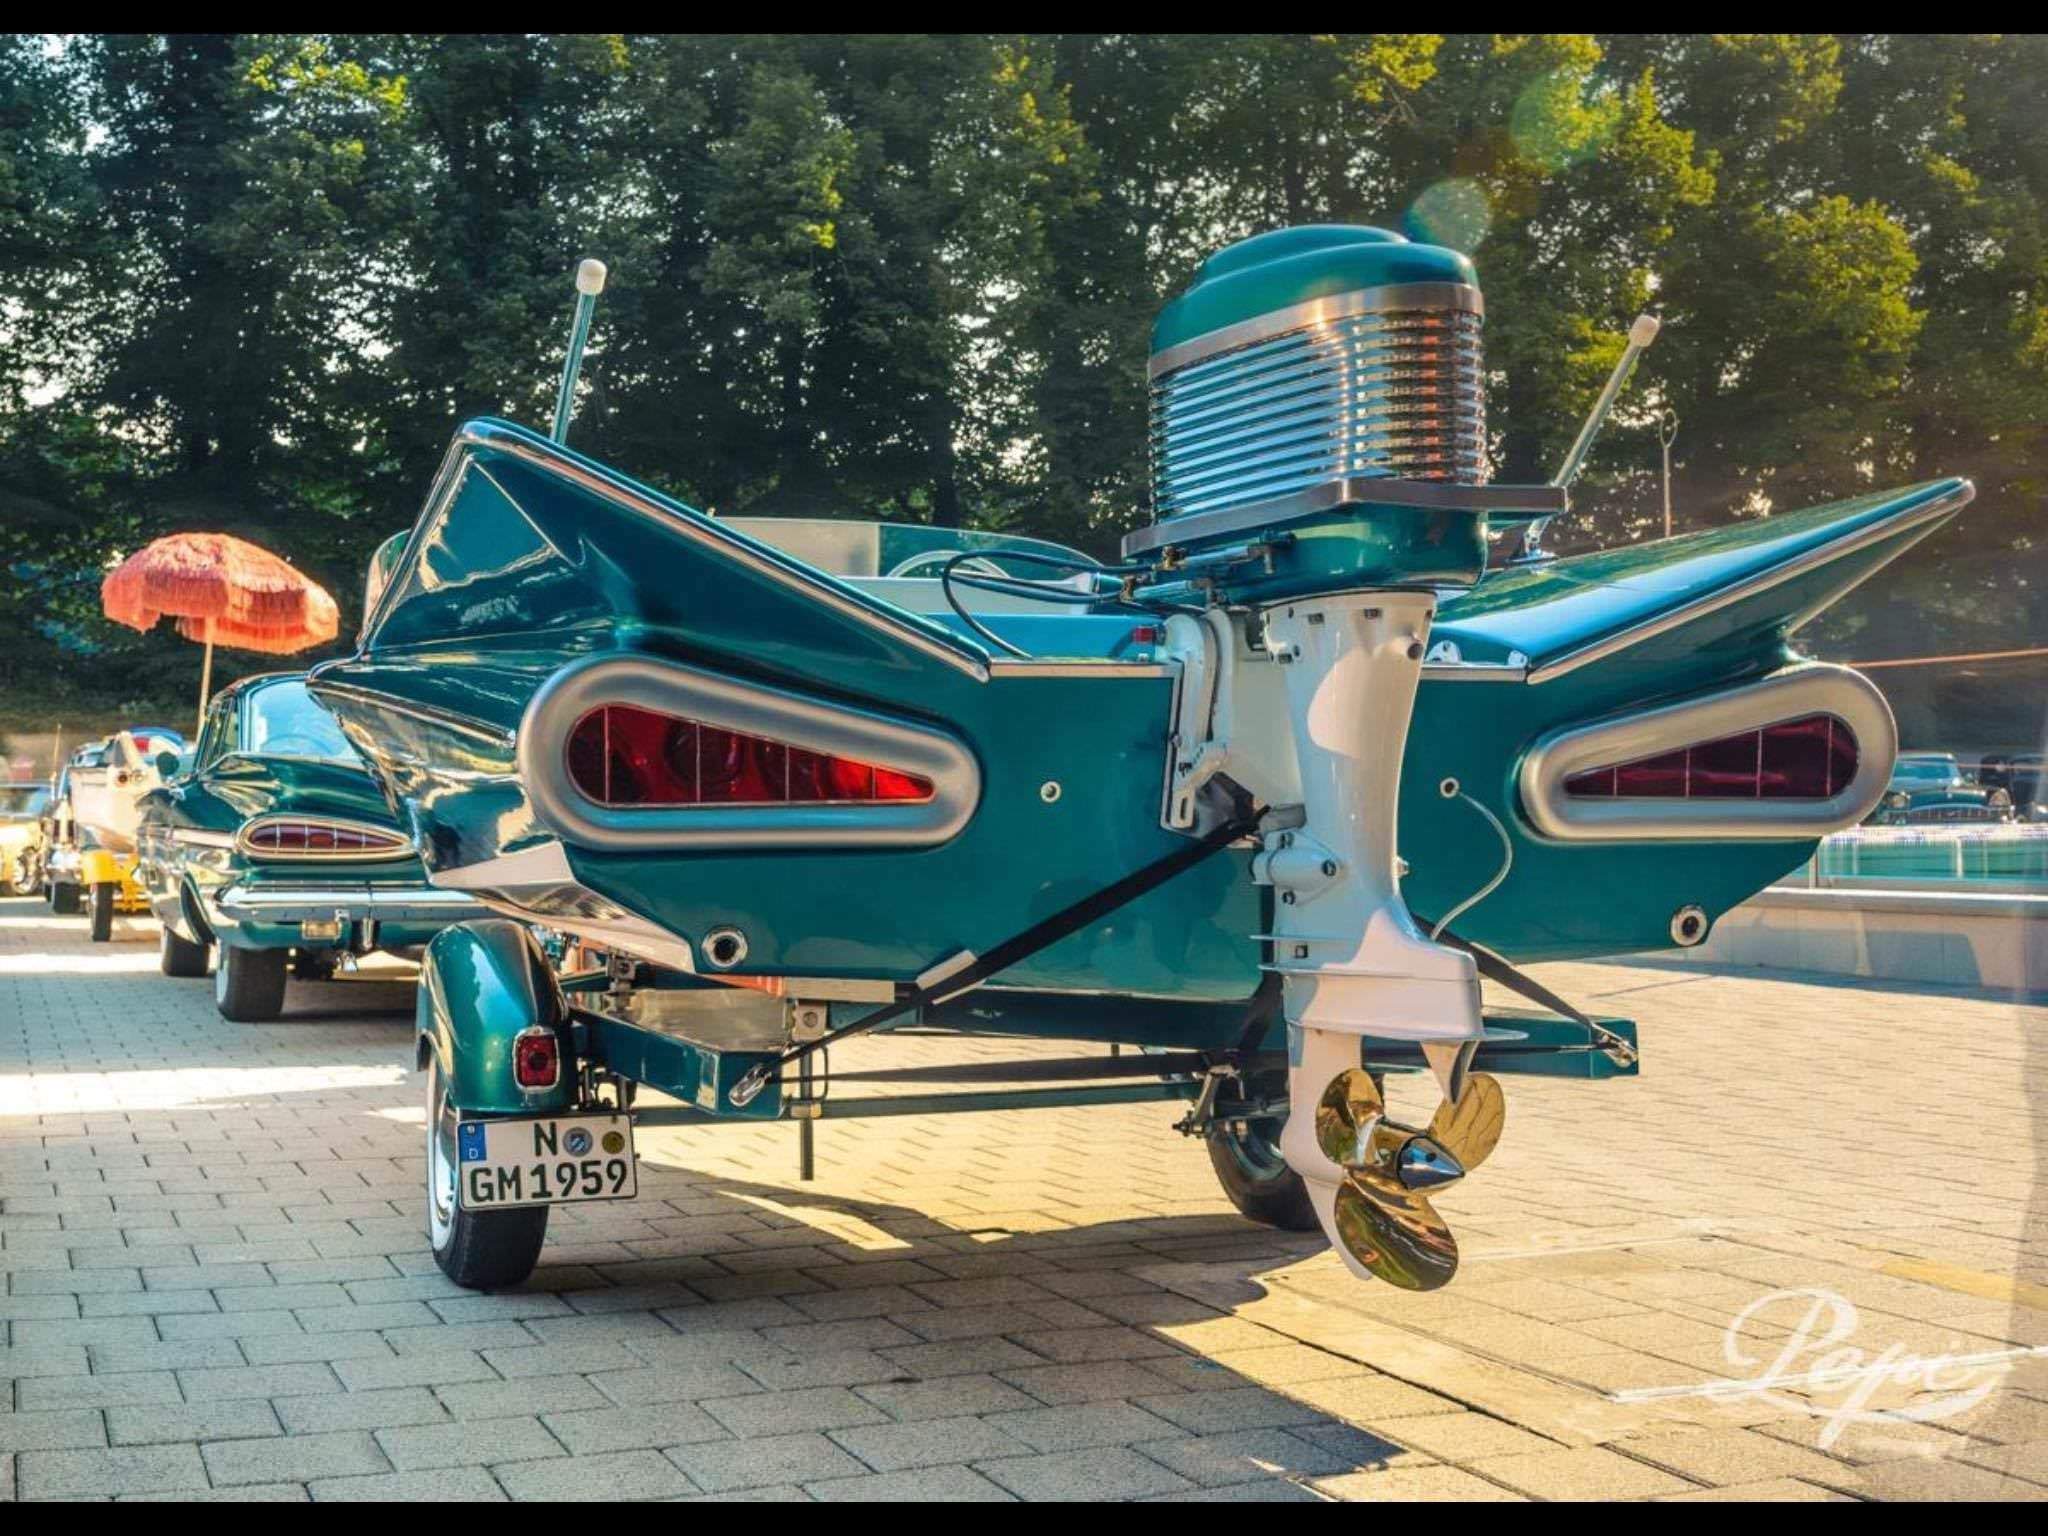 1959 Chevy Impala with matching motor boat : pics | Adrenaline ...